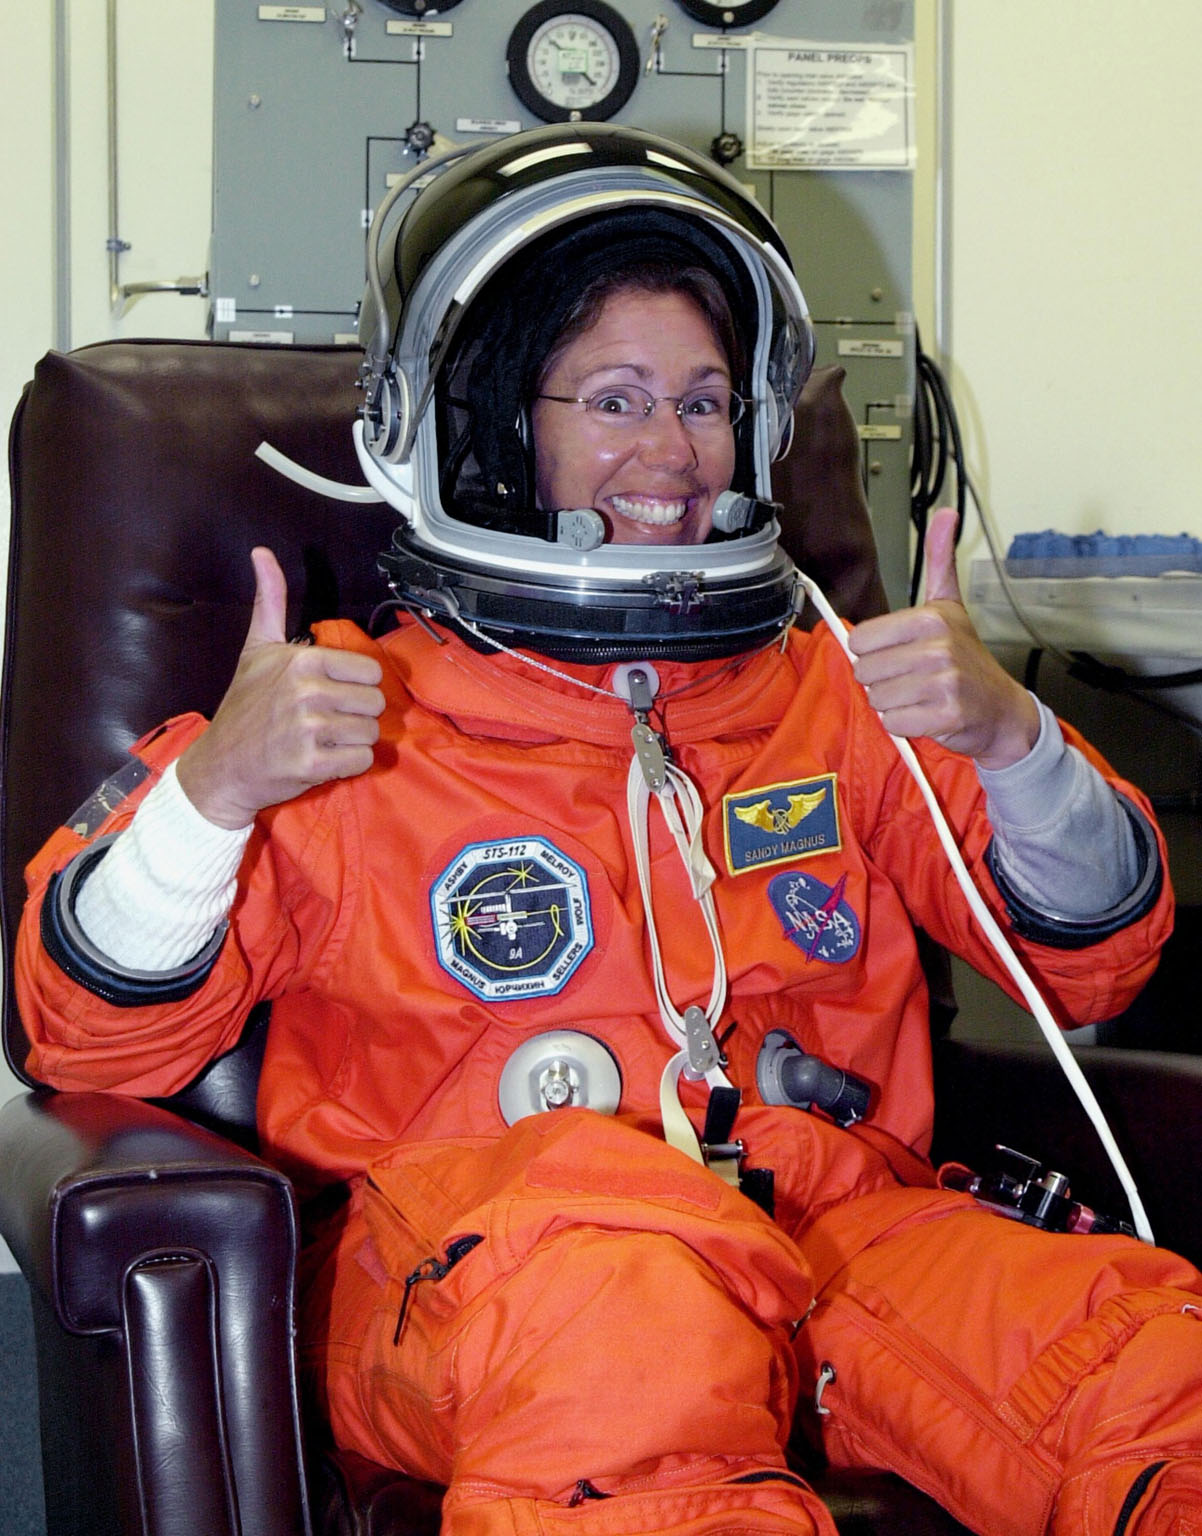 KENNEDY SPACE CENTER, FLA. - STS-112 Mission Specialist Sandra Magnus finishes suiting up before launch. STS-112 is the 15th assembly flight to the International Space Station, carrying the S1 Integrated Truss Structure and the Crew and Equipment Translation Aid (CETA) Cart A. The CETA is the first of two human-powered carts that will ride along the ISS railway, providing mobile work platforms for future spacewalking astronauts. On the 11-day mission, three spacewalks are planned to attach the S1 truss to the Station. Launch is scheduled for 3:46 p.m. EDT from Launch Pad 39B.